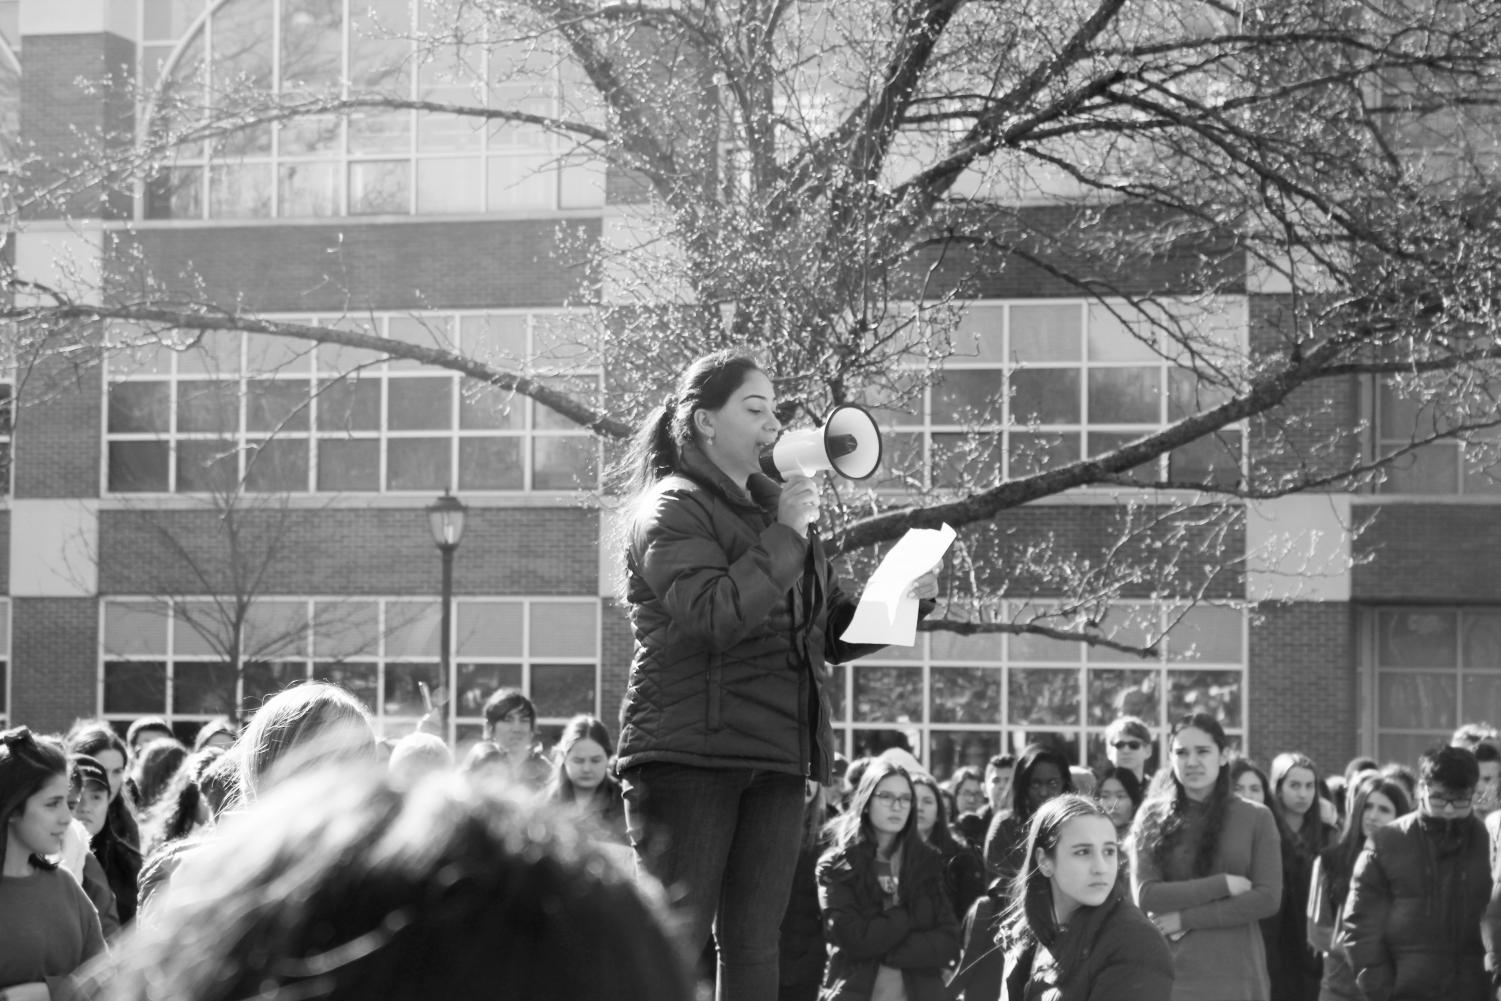 On March 14, students left their classrooms to participate in the nationwide walkout. Pictured above is Eve Harari, reading the names of the Parkland victims.